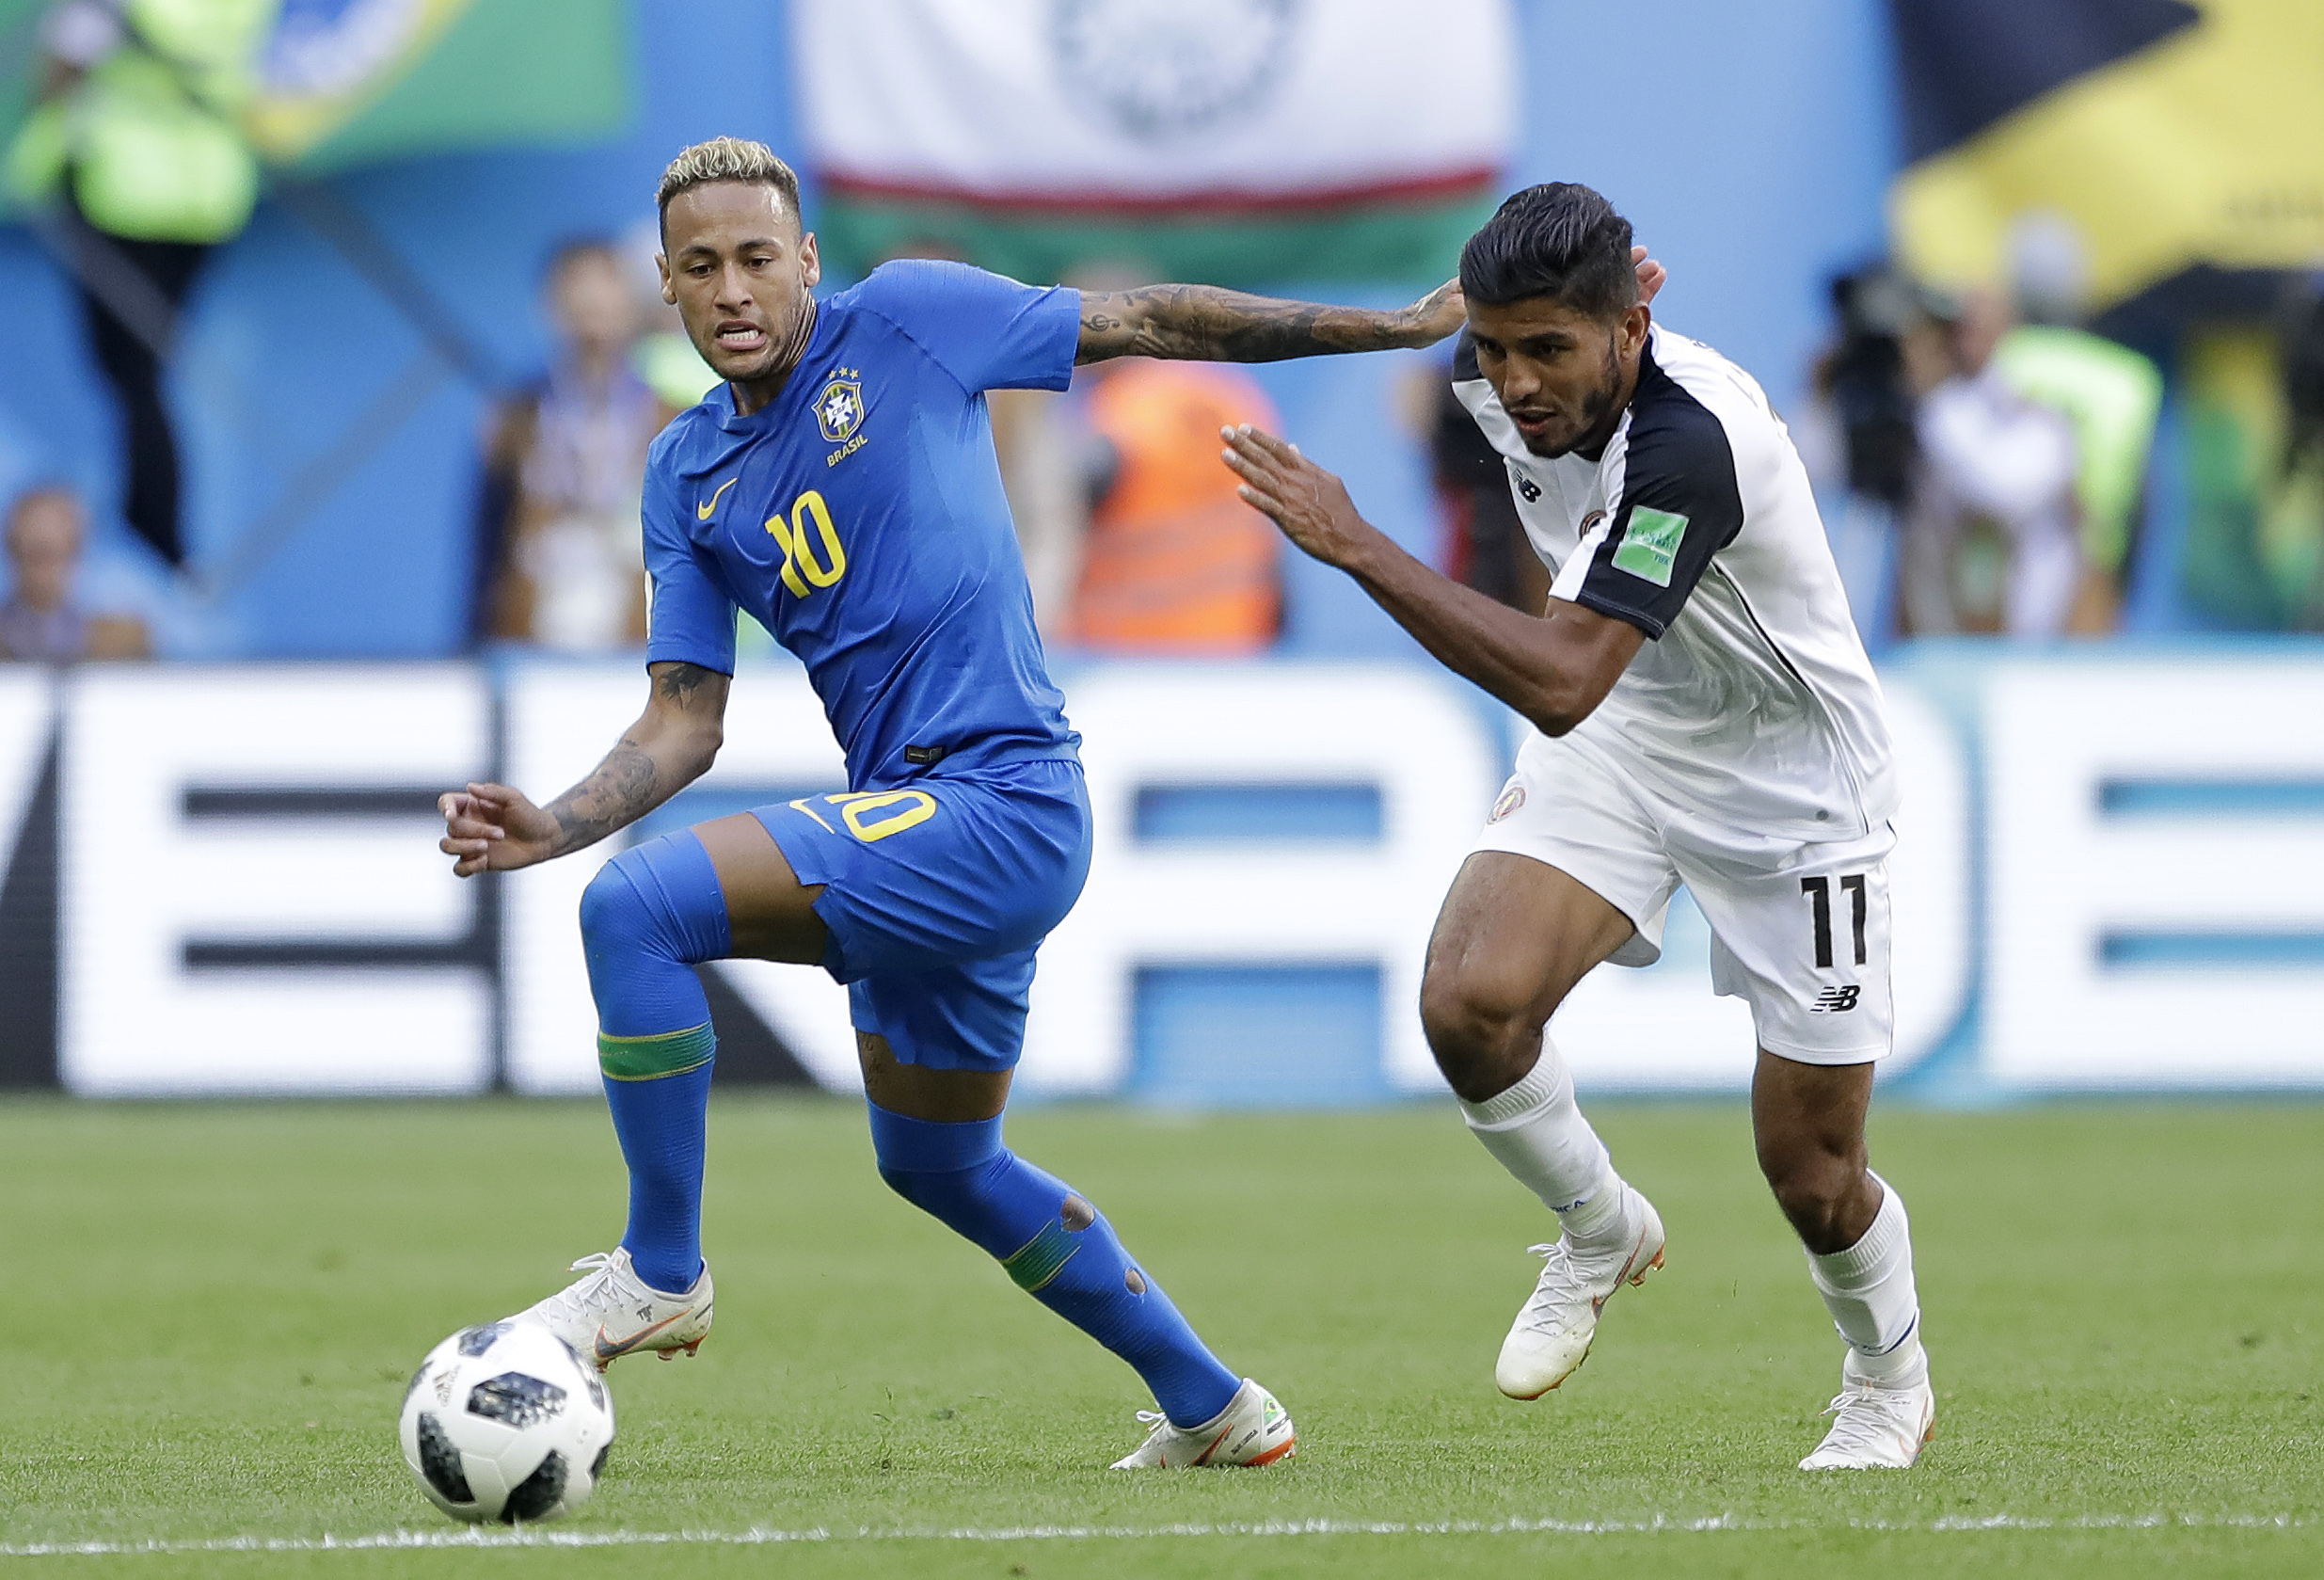 "<div class=""meta image-caption""><div class=""origin-logo origin-image none""><span>none</span></div><span class=""caption-text"">Brazil's Neymar and Costa Rica's Johan Venegas, right, battle for the ball during the group E match between Brazil and Costa Rica in the St. Petersburg Stadium on Friday, June 22. (Andre Penner/AP Photo)</span></div>"